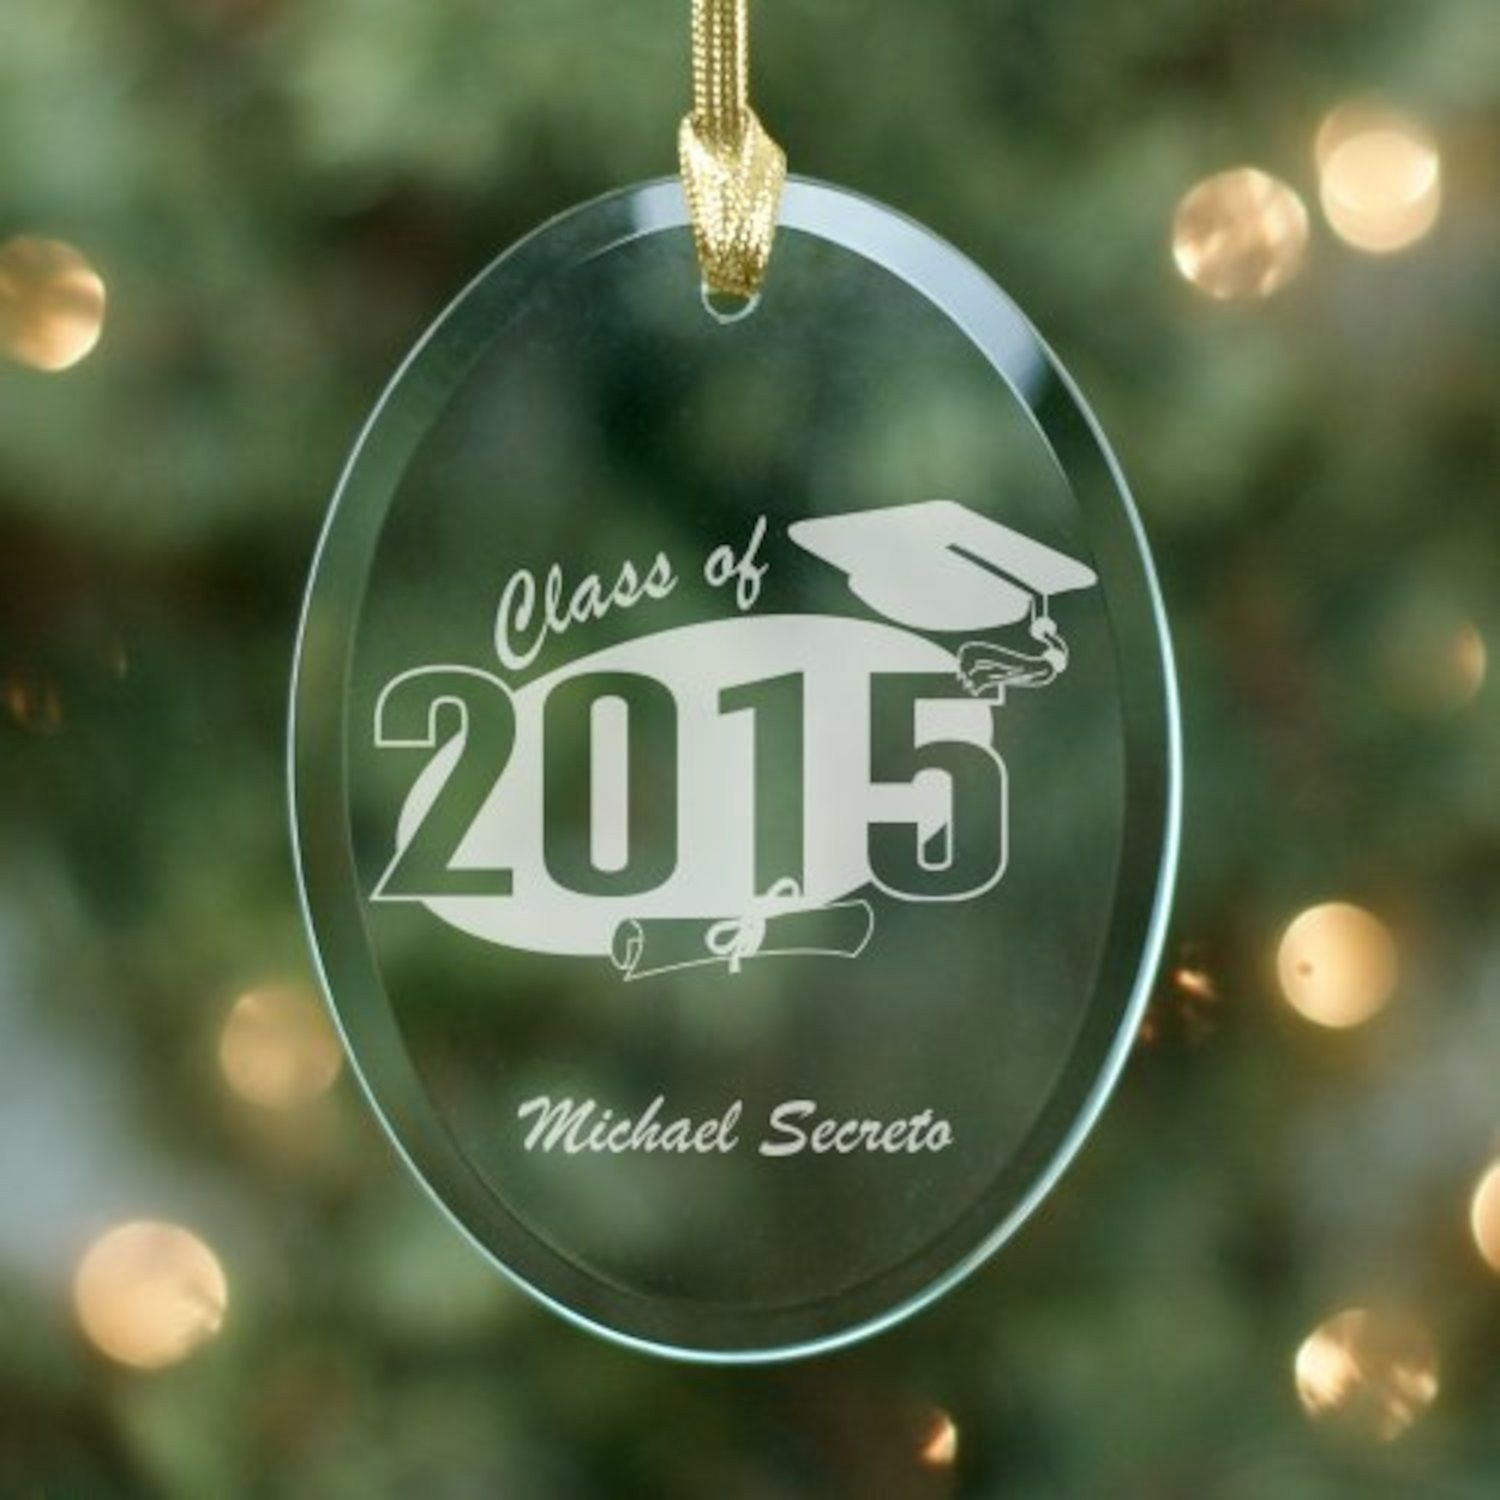 Blank ornaments to personalize - Personalized Graduation Ornament